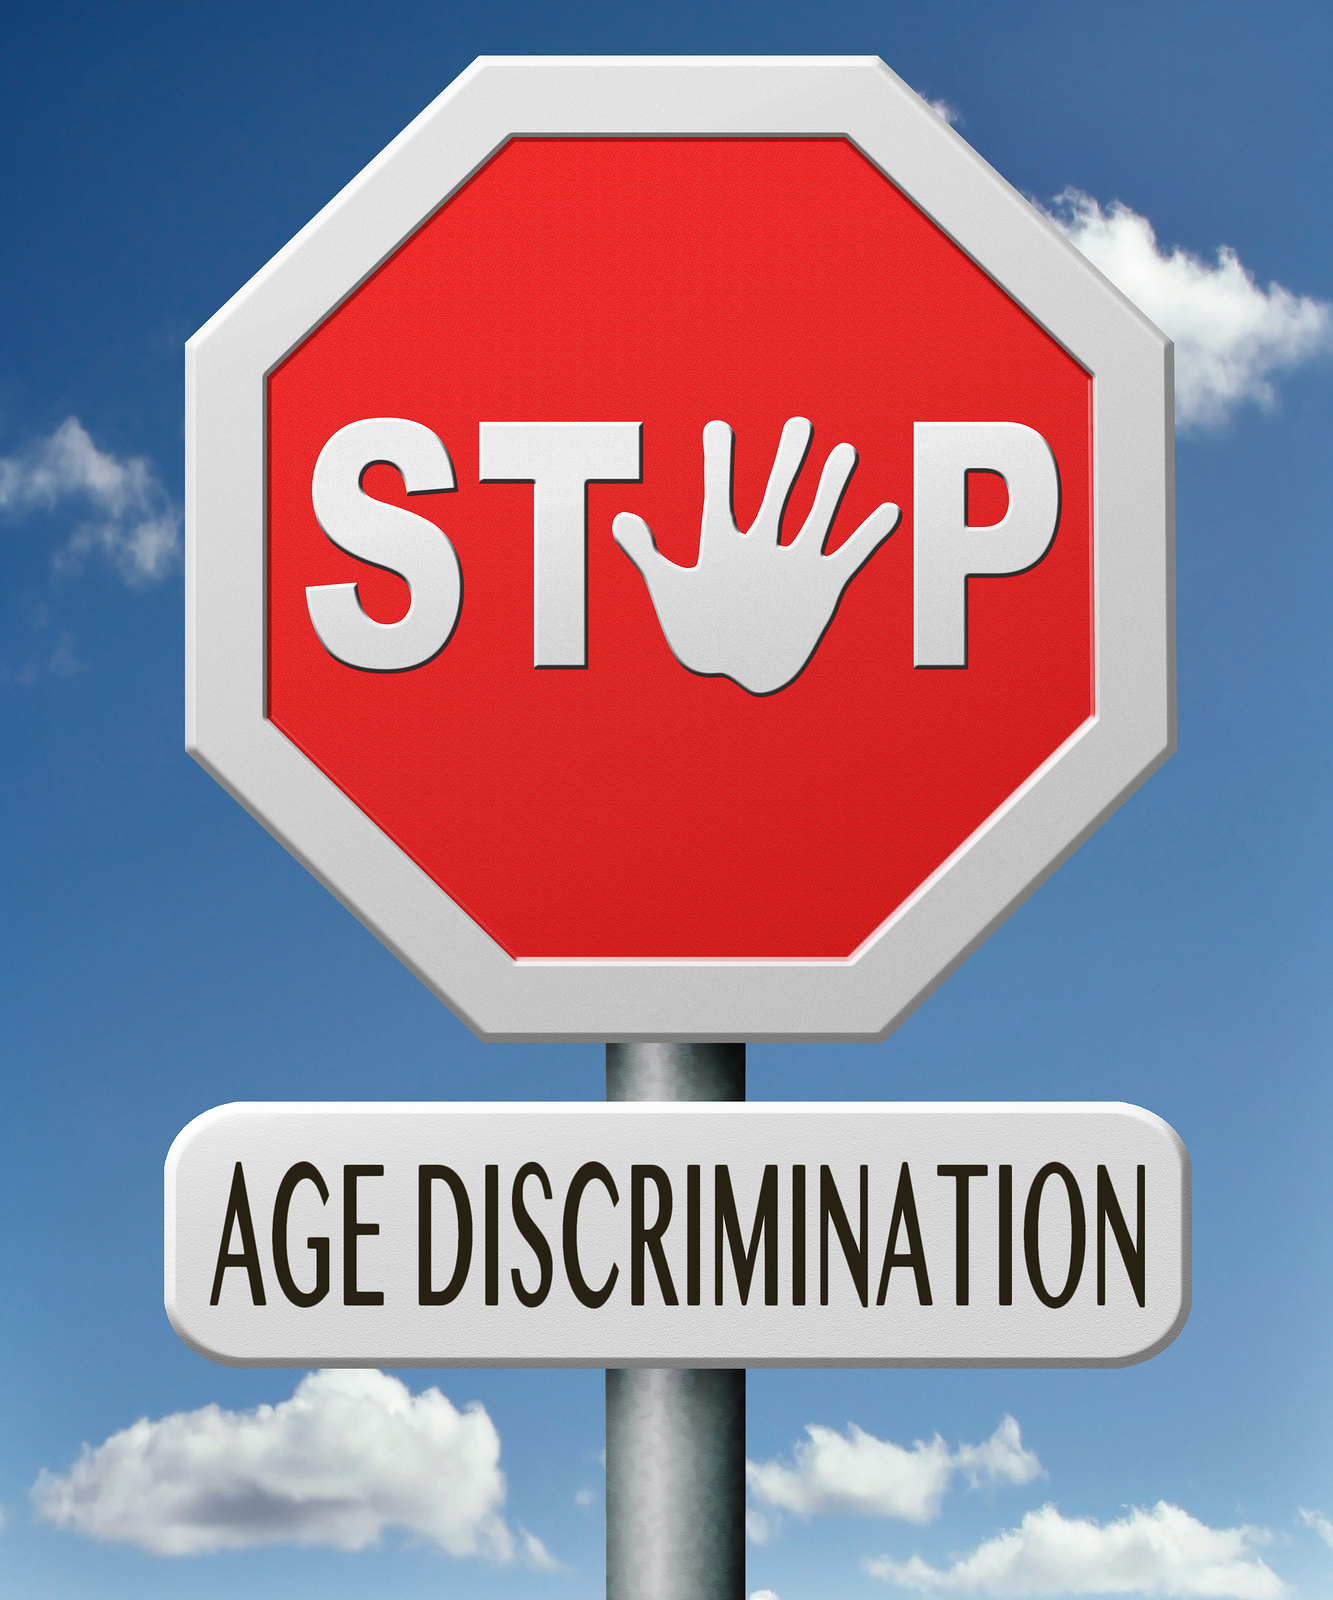 racism and discrimmination Racism often leads to racial discrimination racial discrimination is the unlawful and immoral treatment of those based on differences among racial groups.